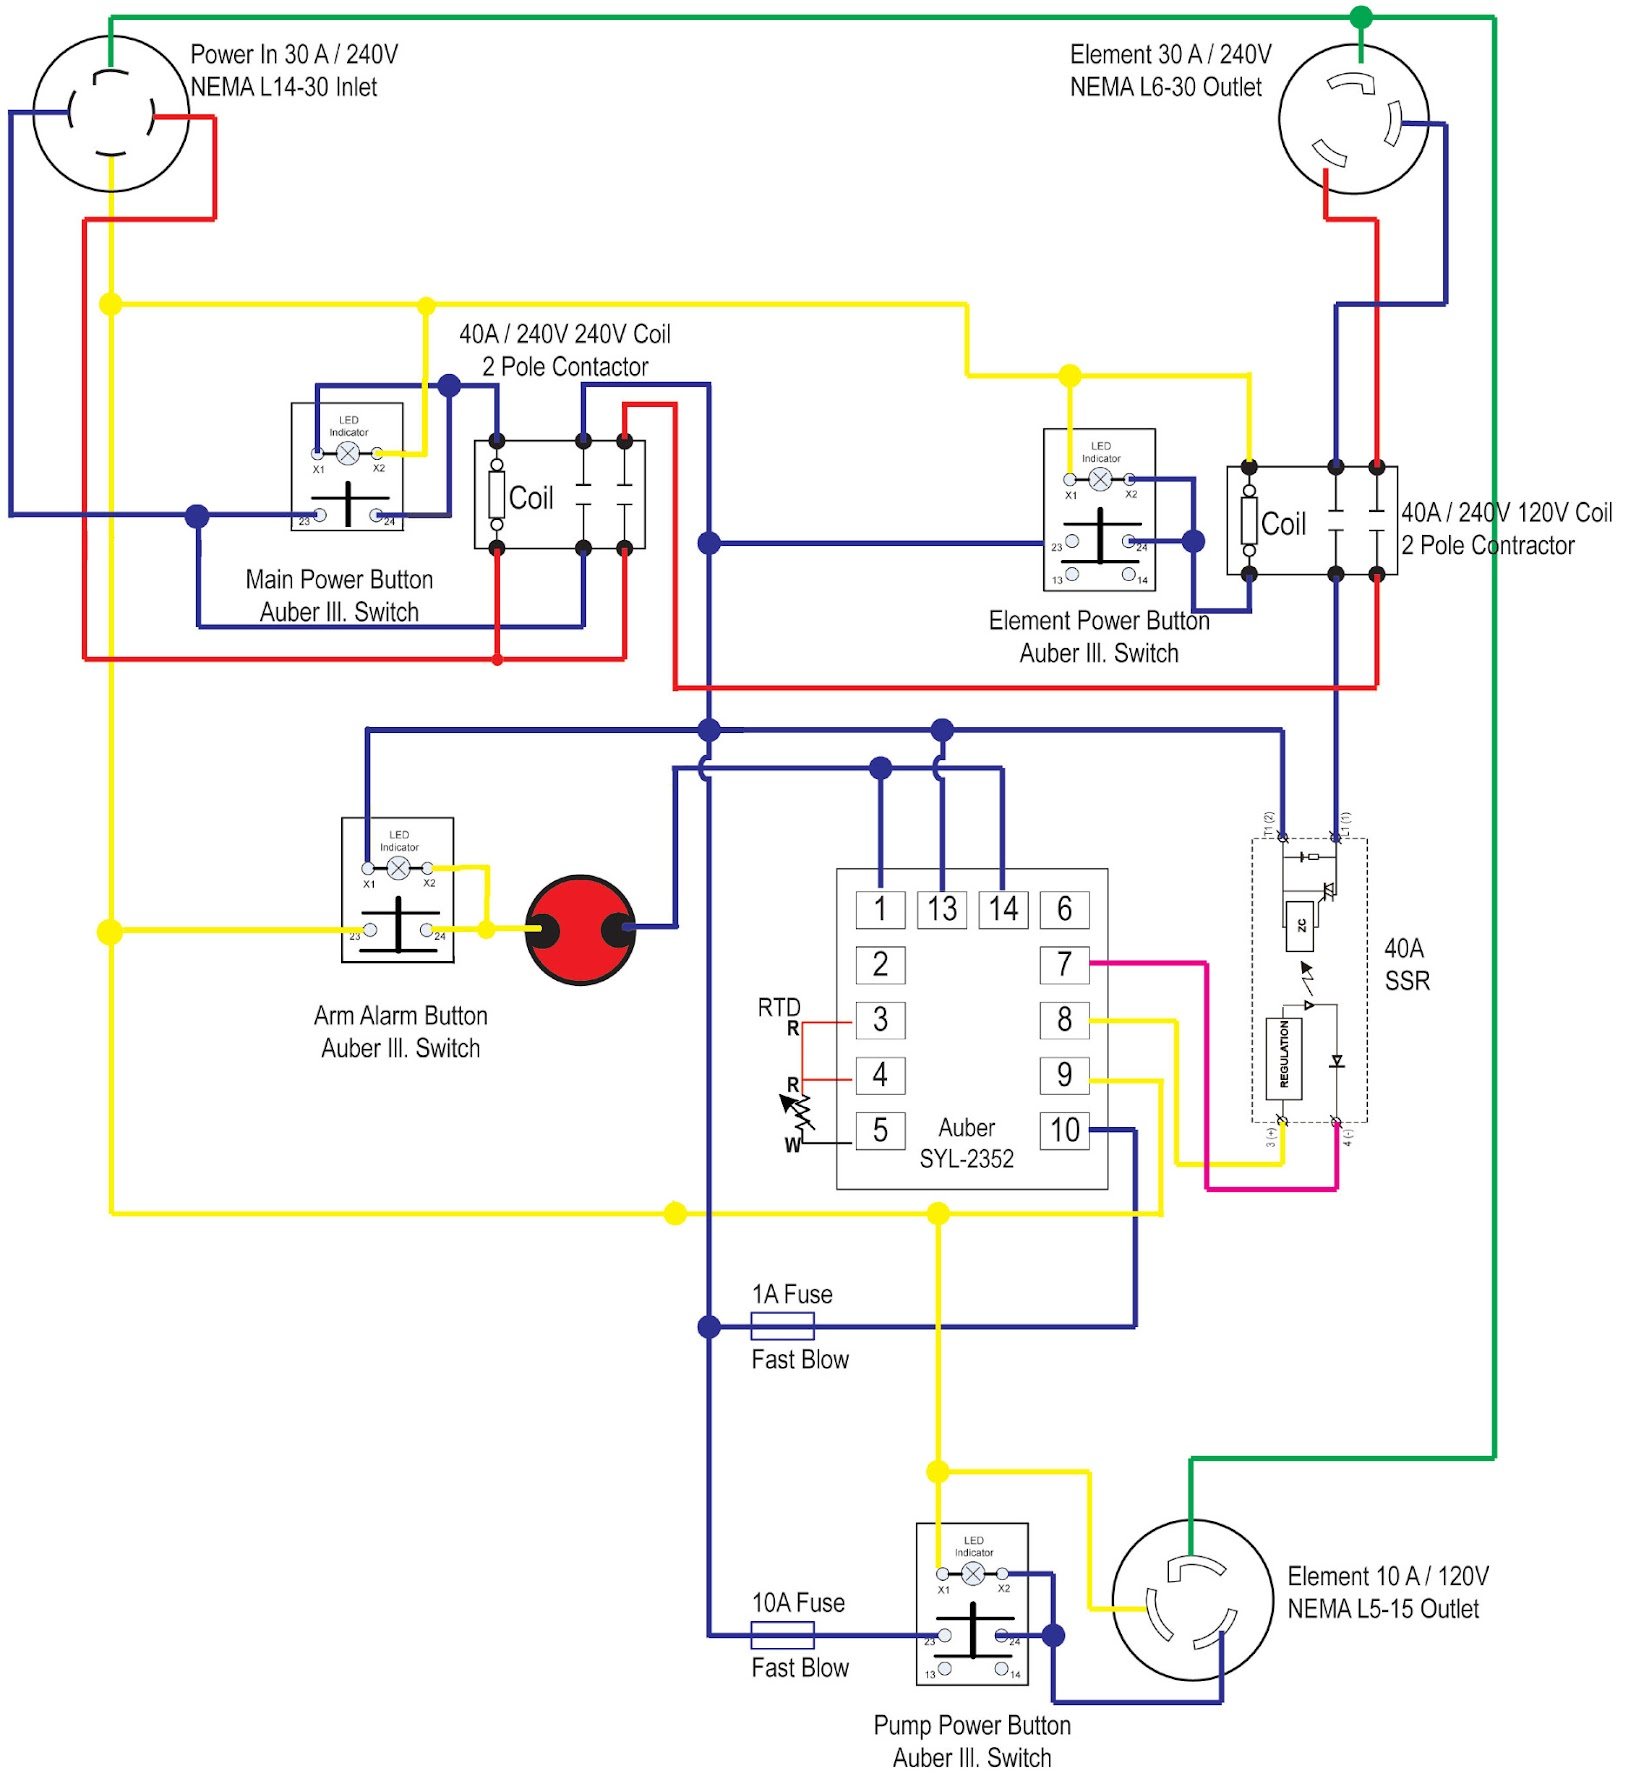 ez dumper wiring diagram ez image wiring diagram ez dumper wiring diagrams ez dumper wiring diagrams also wiring on ez dumper wiring diagram